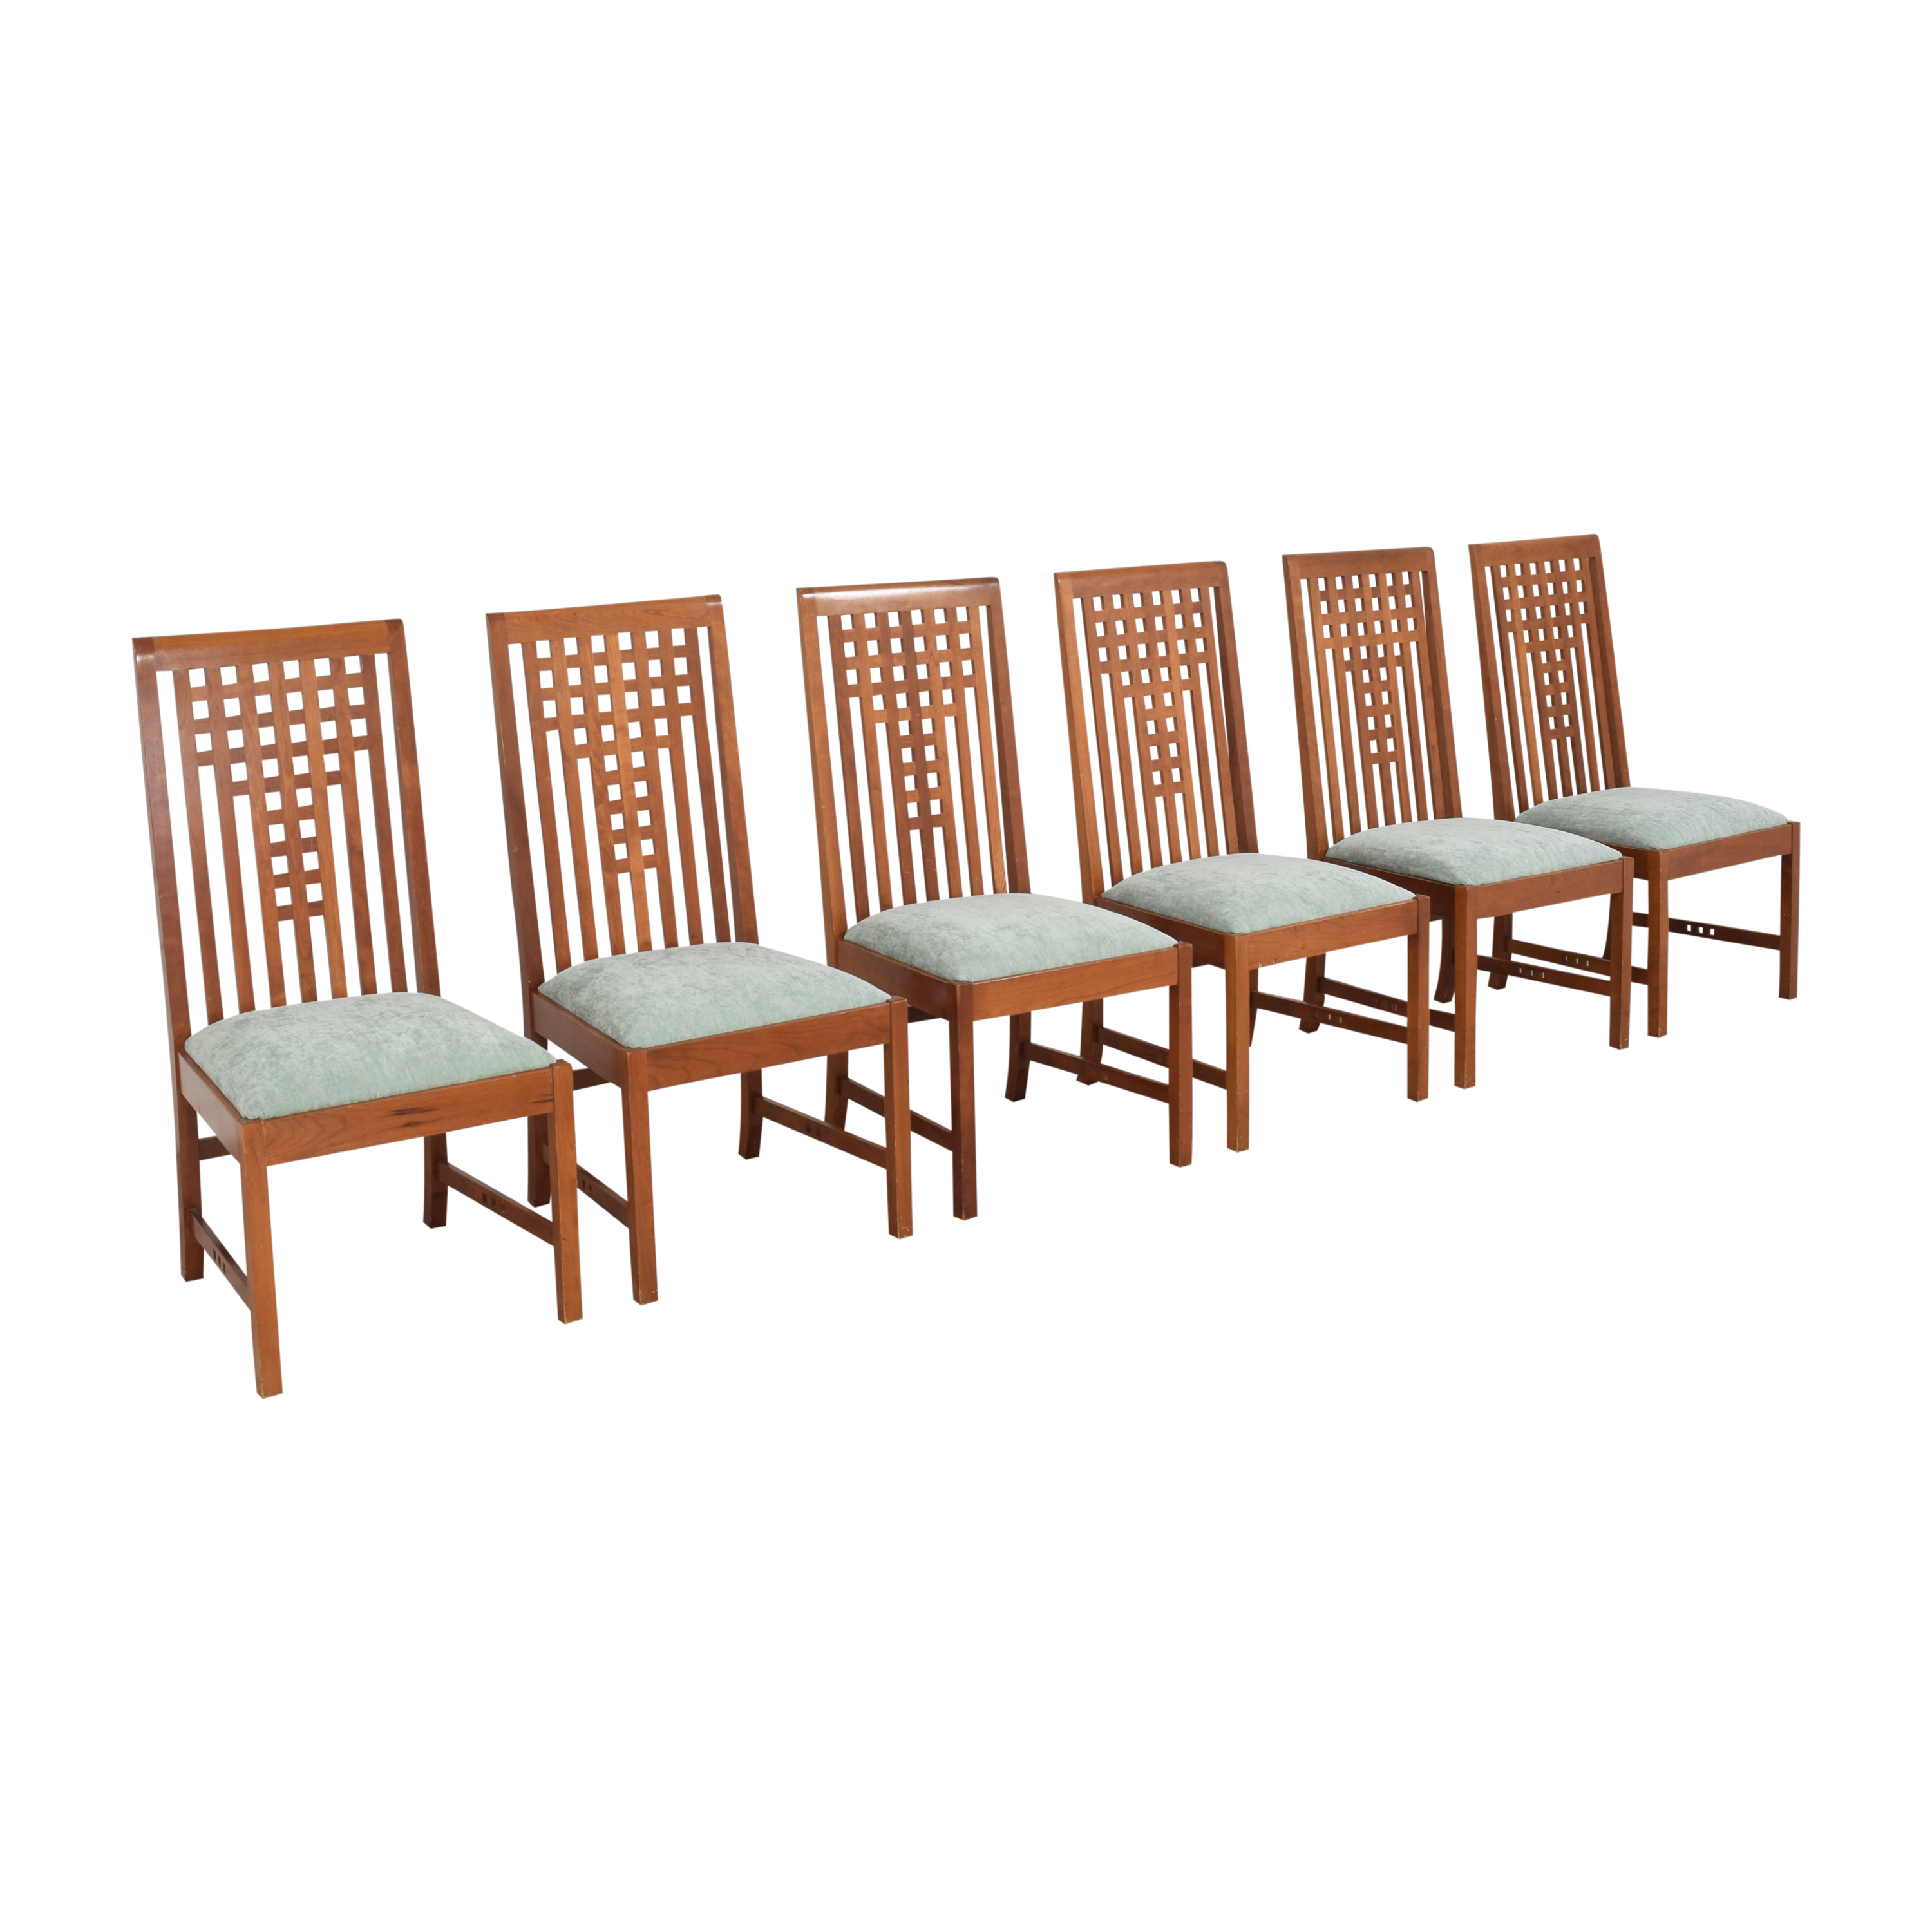 Stickley Furniture Stickley Furniture 21st Century Lattice Dining Side Chairs pa